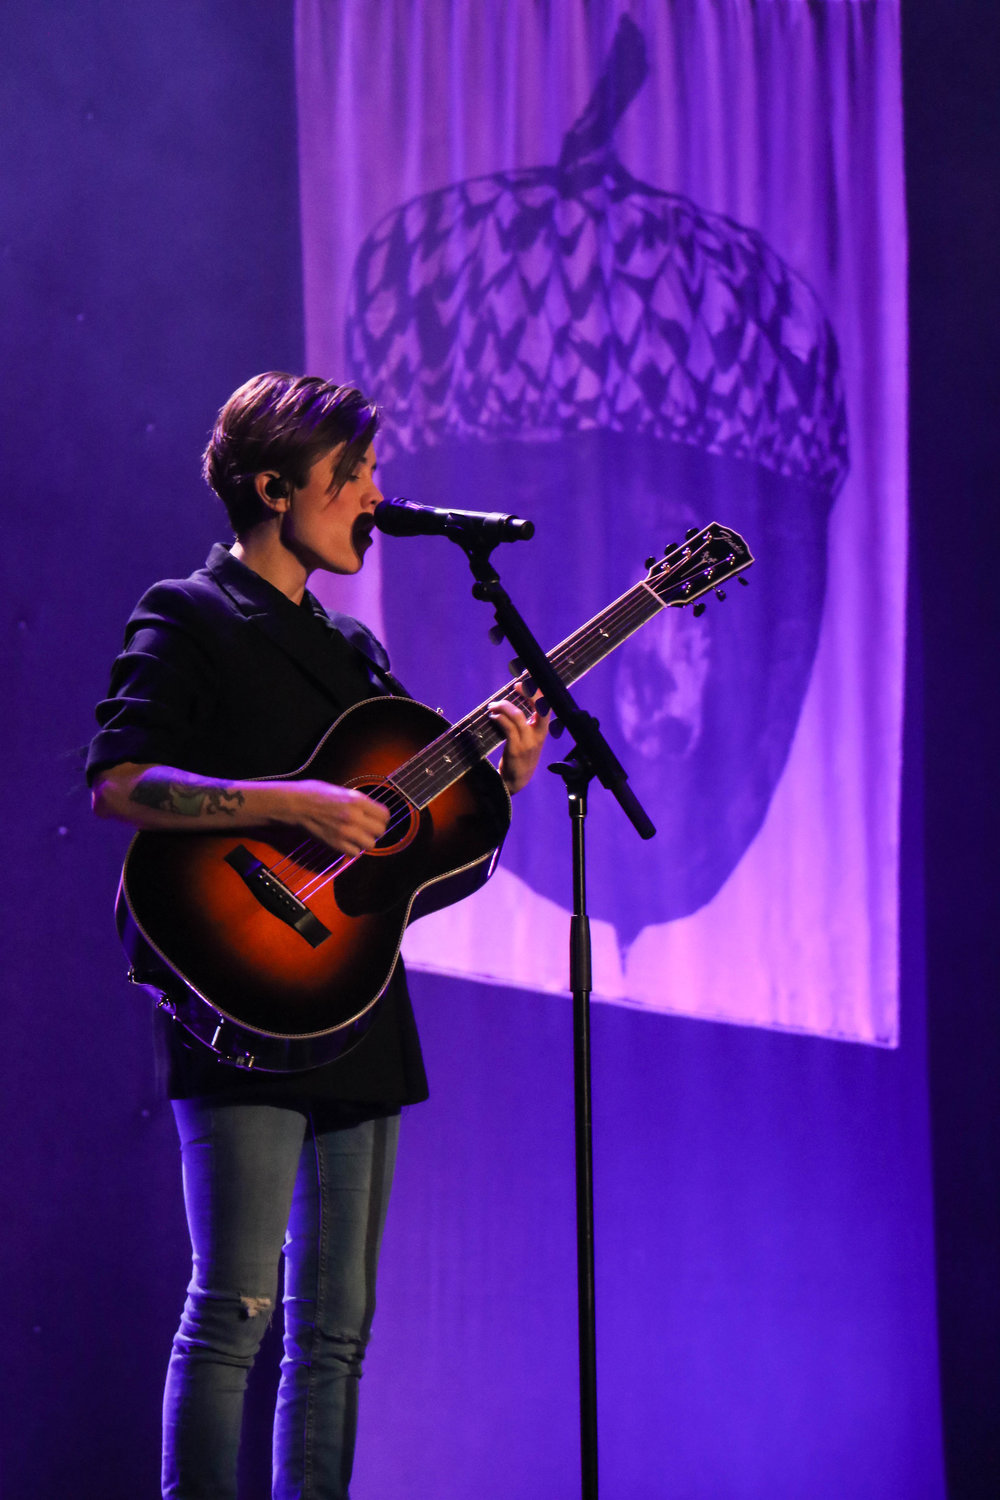 Tegan lost her voice for the second night in Austin but managed to sing some background vocals accompanied by stellar guitar playing.